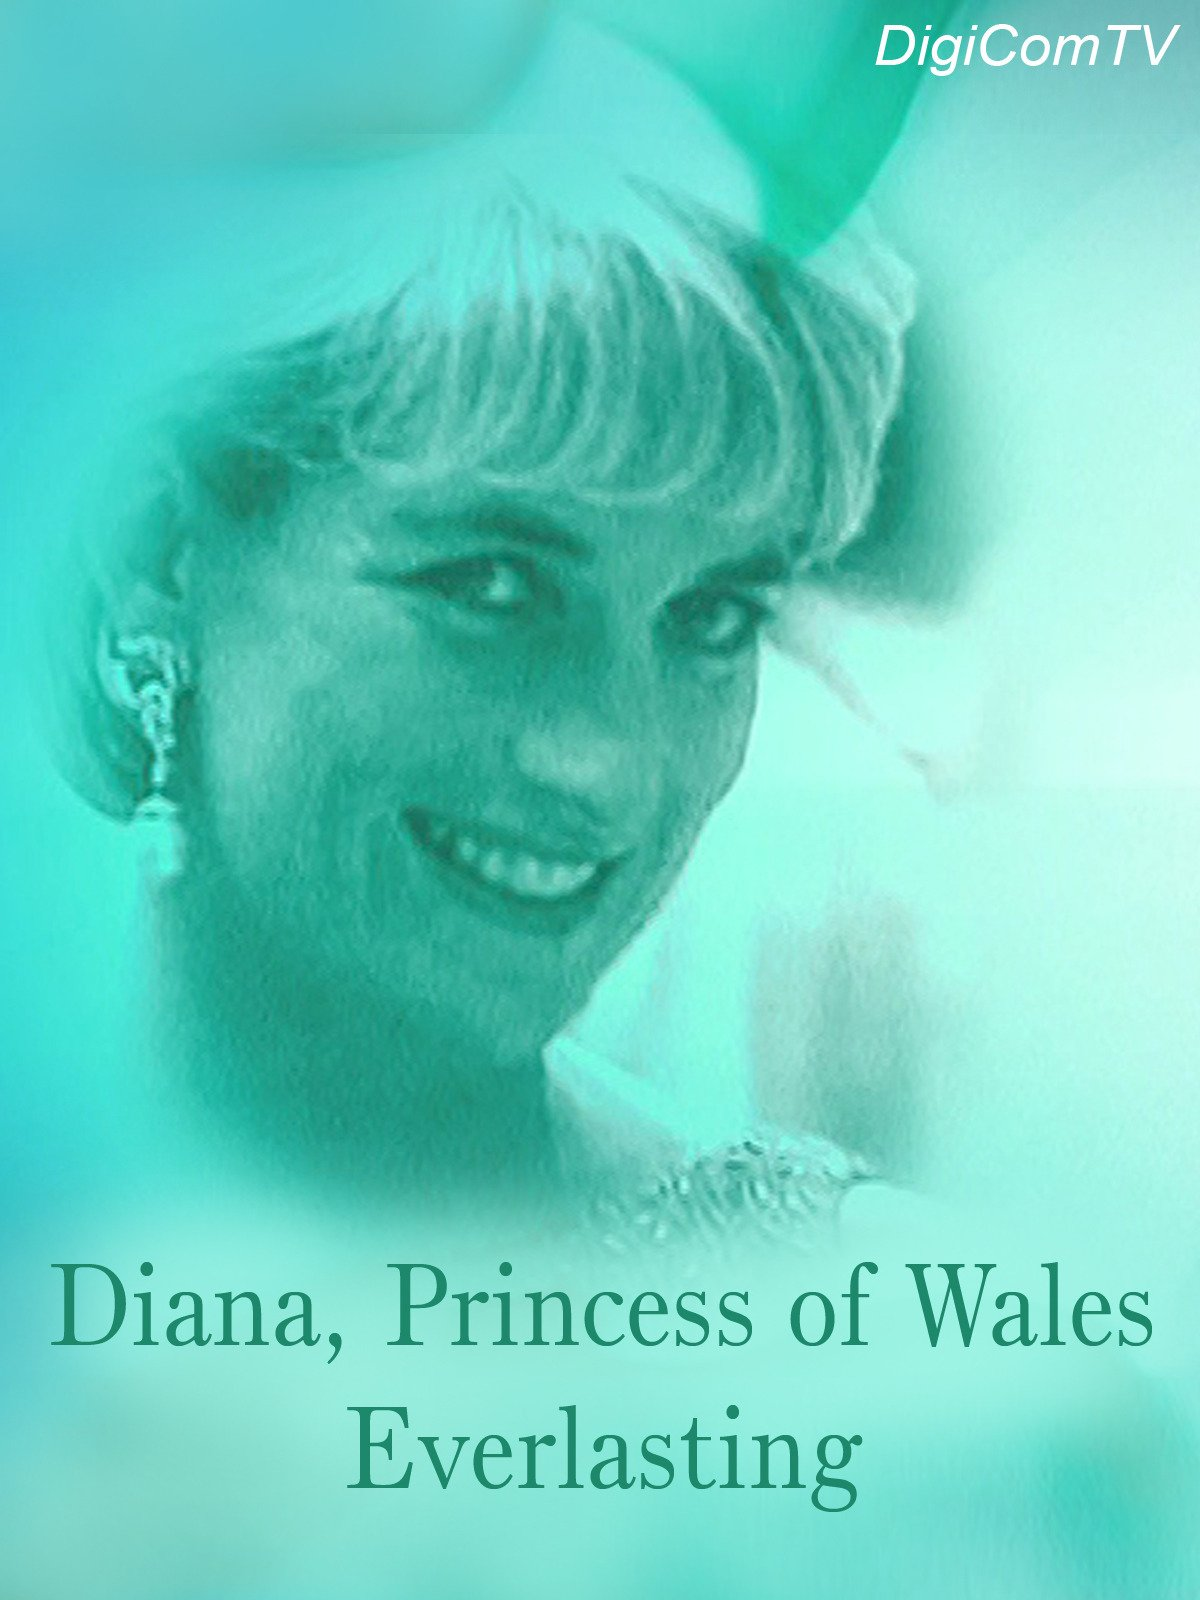 Diana, Princess of Wales on Amazon Prime Instant Video UK